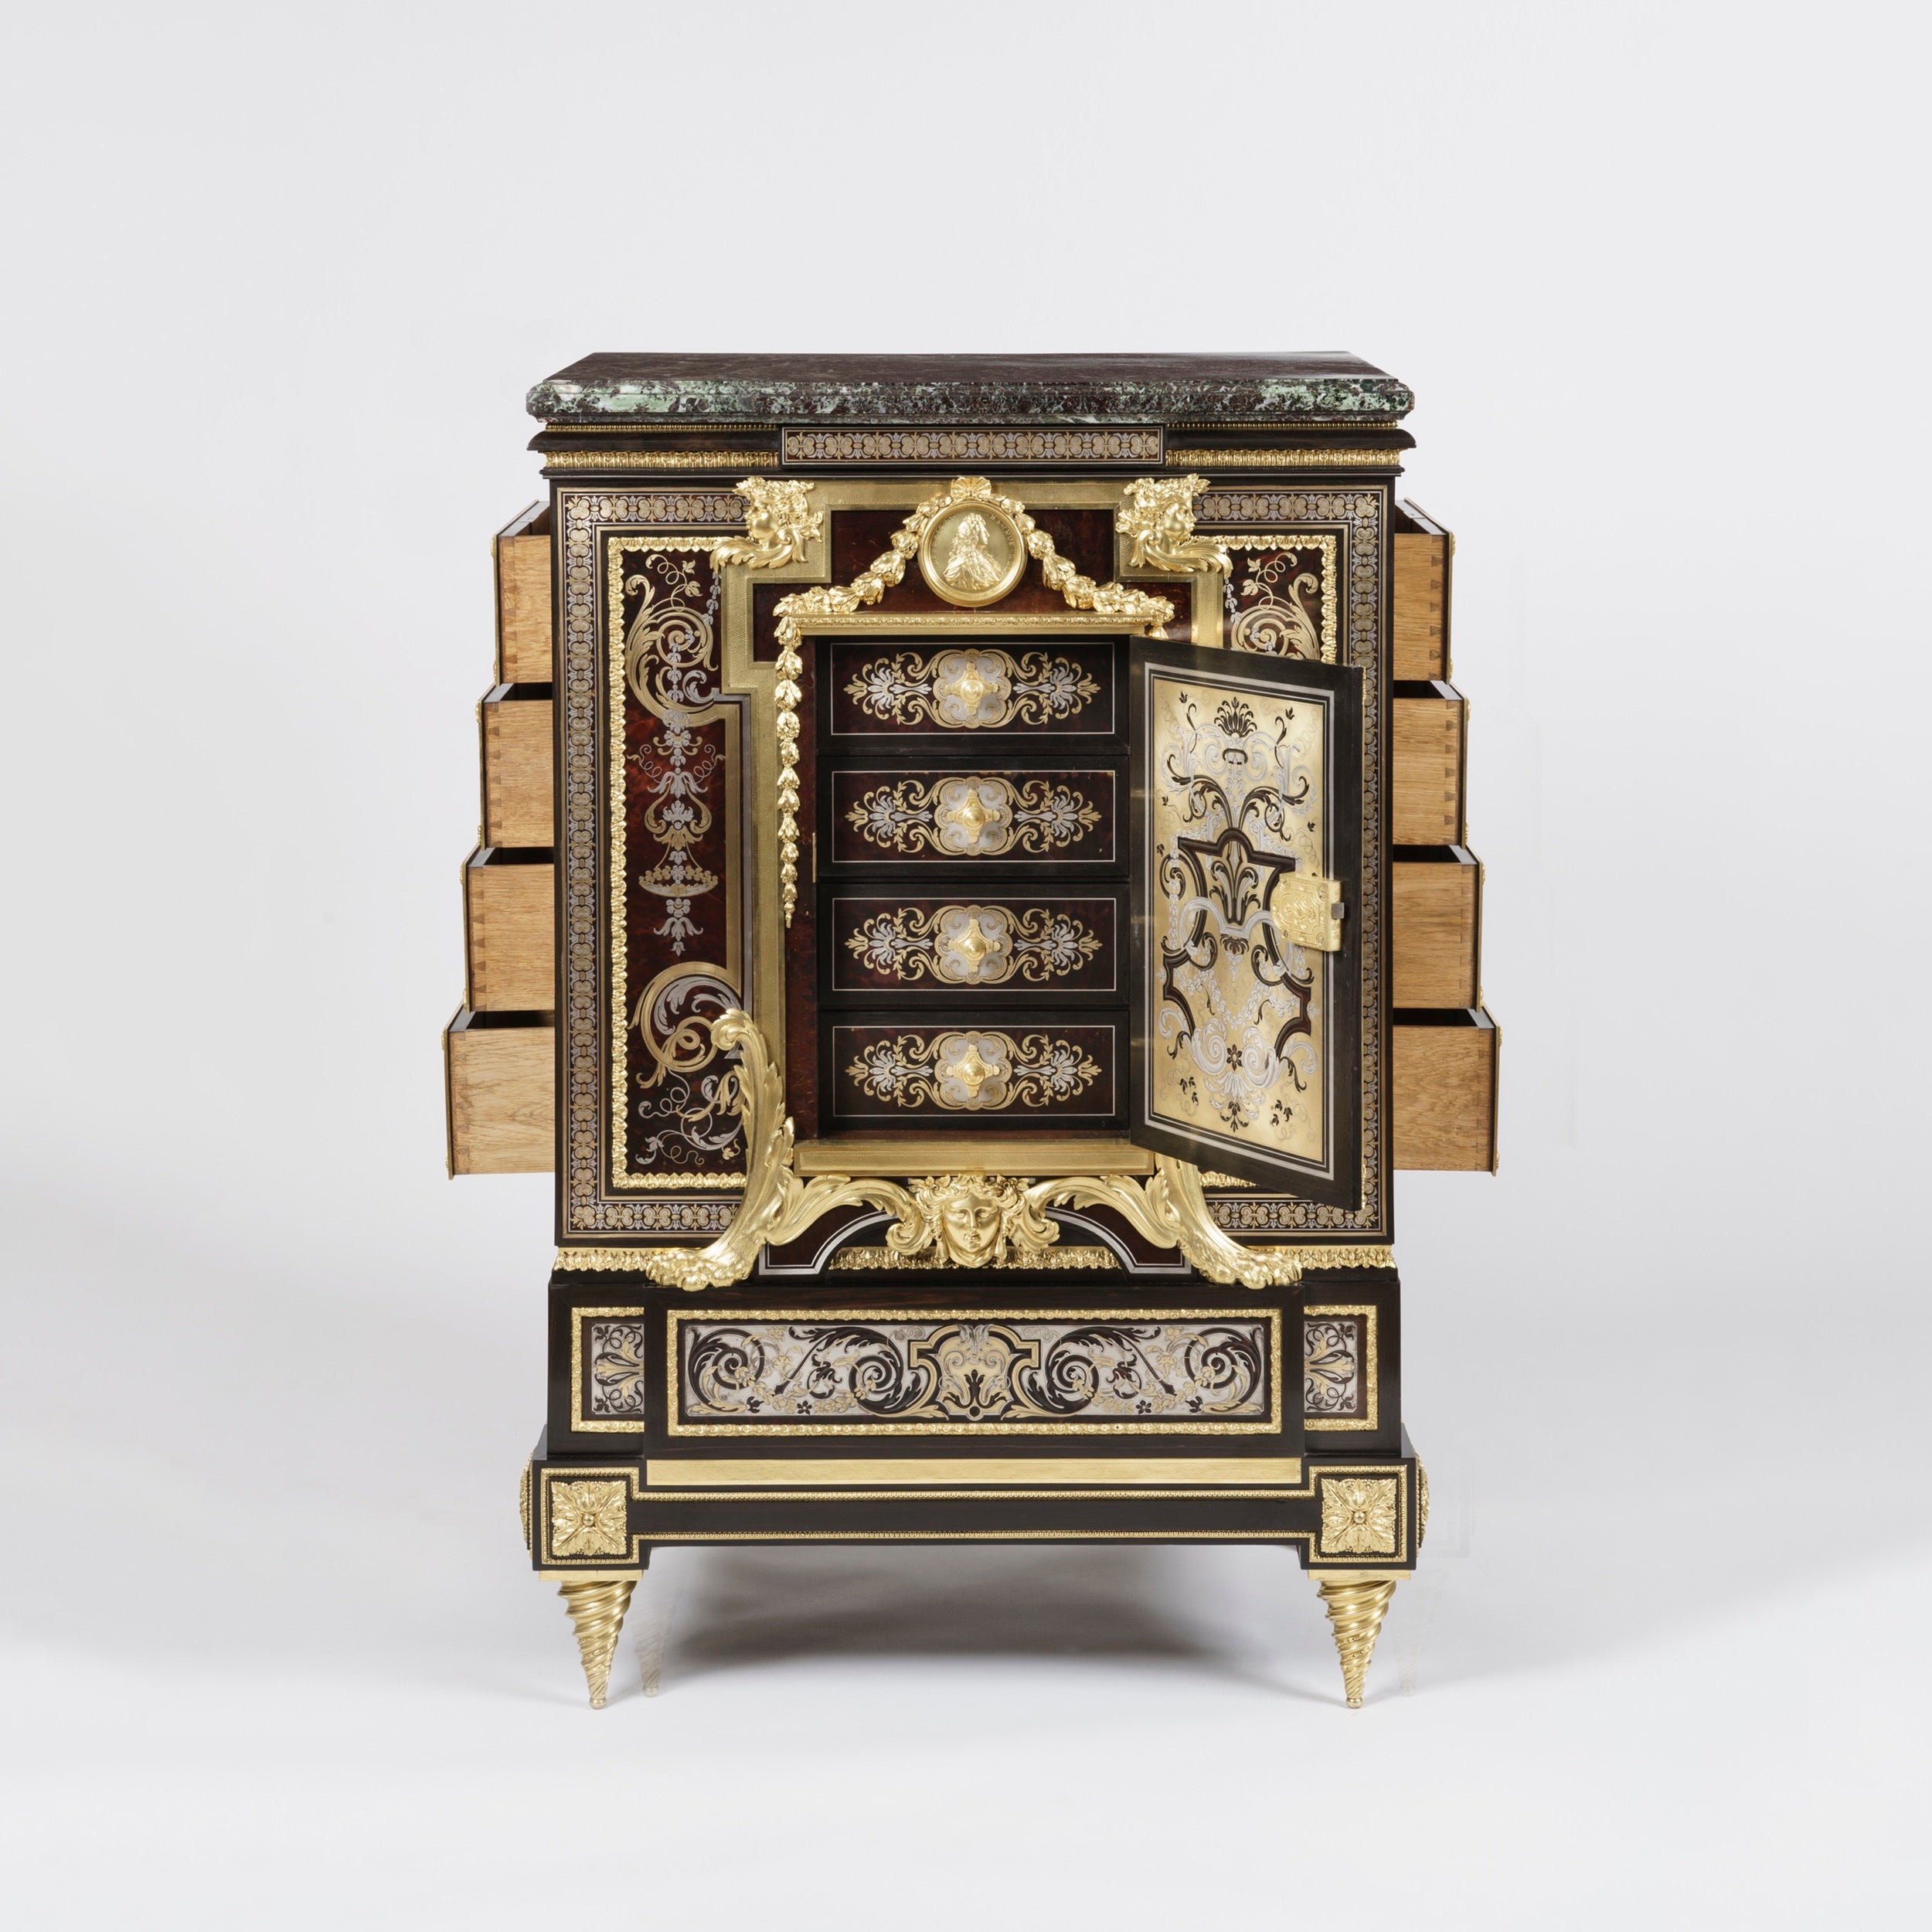 Meuble Ancien Style Henri 4 rare boulle marquetry cabinet attributed to charles